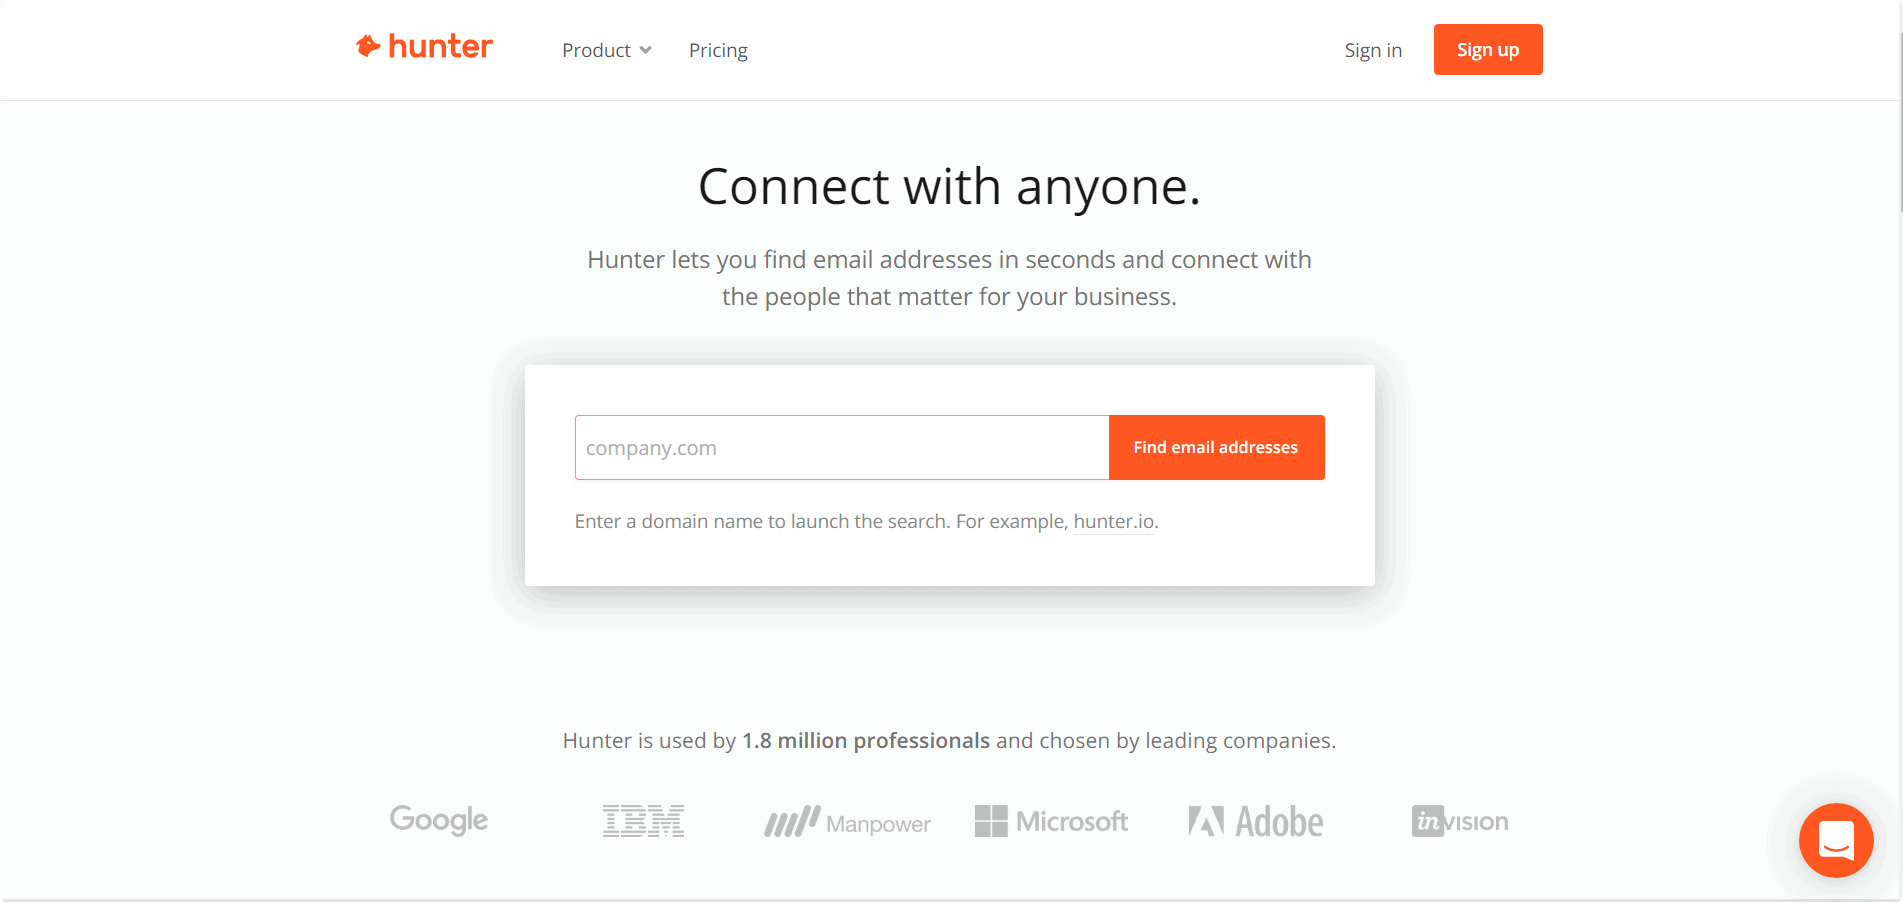 Hunter email finding tool